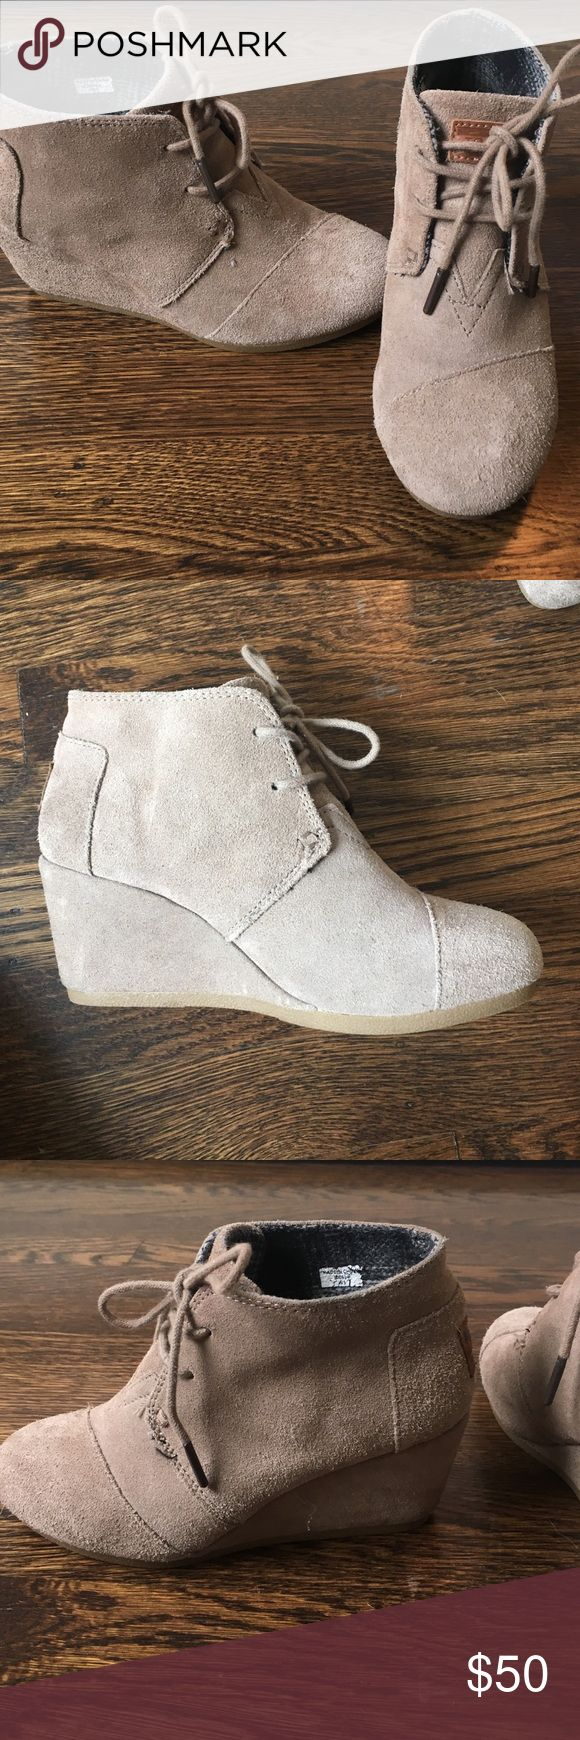 TOMS high heel boots Super cute comfy boots, very easy to walk in. Toms Shoes Heeled Boots